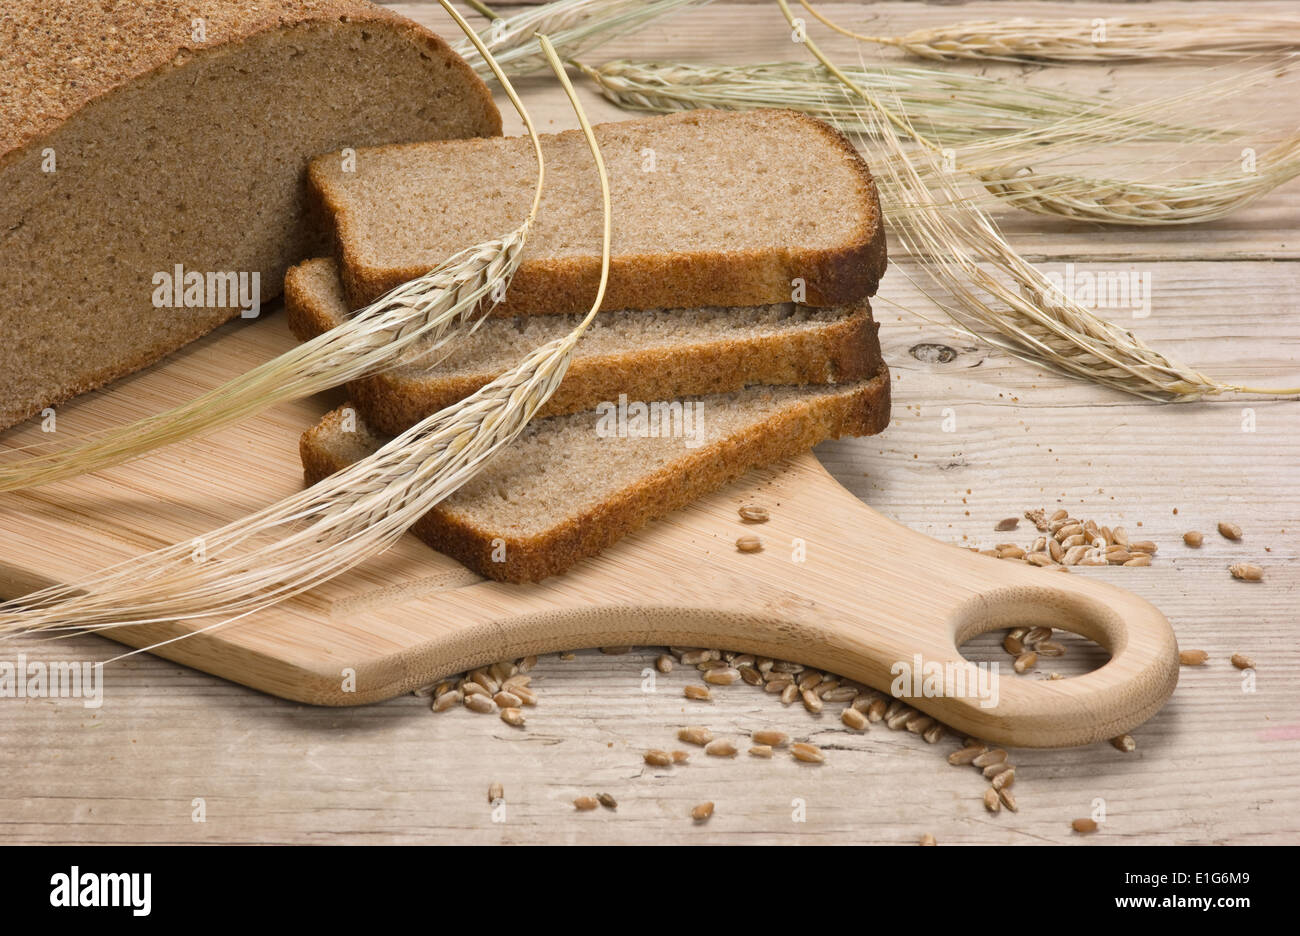 slices of rye bread and ears of corn on the wooden table - Stock Image